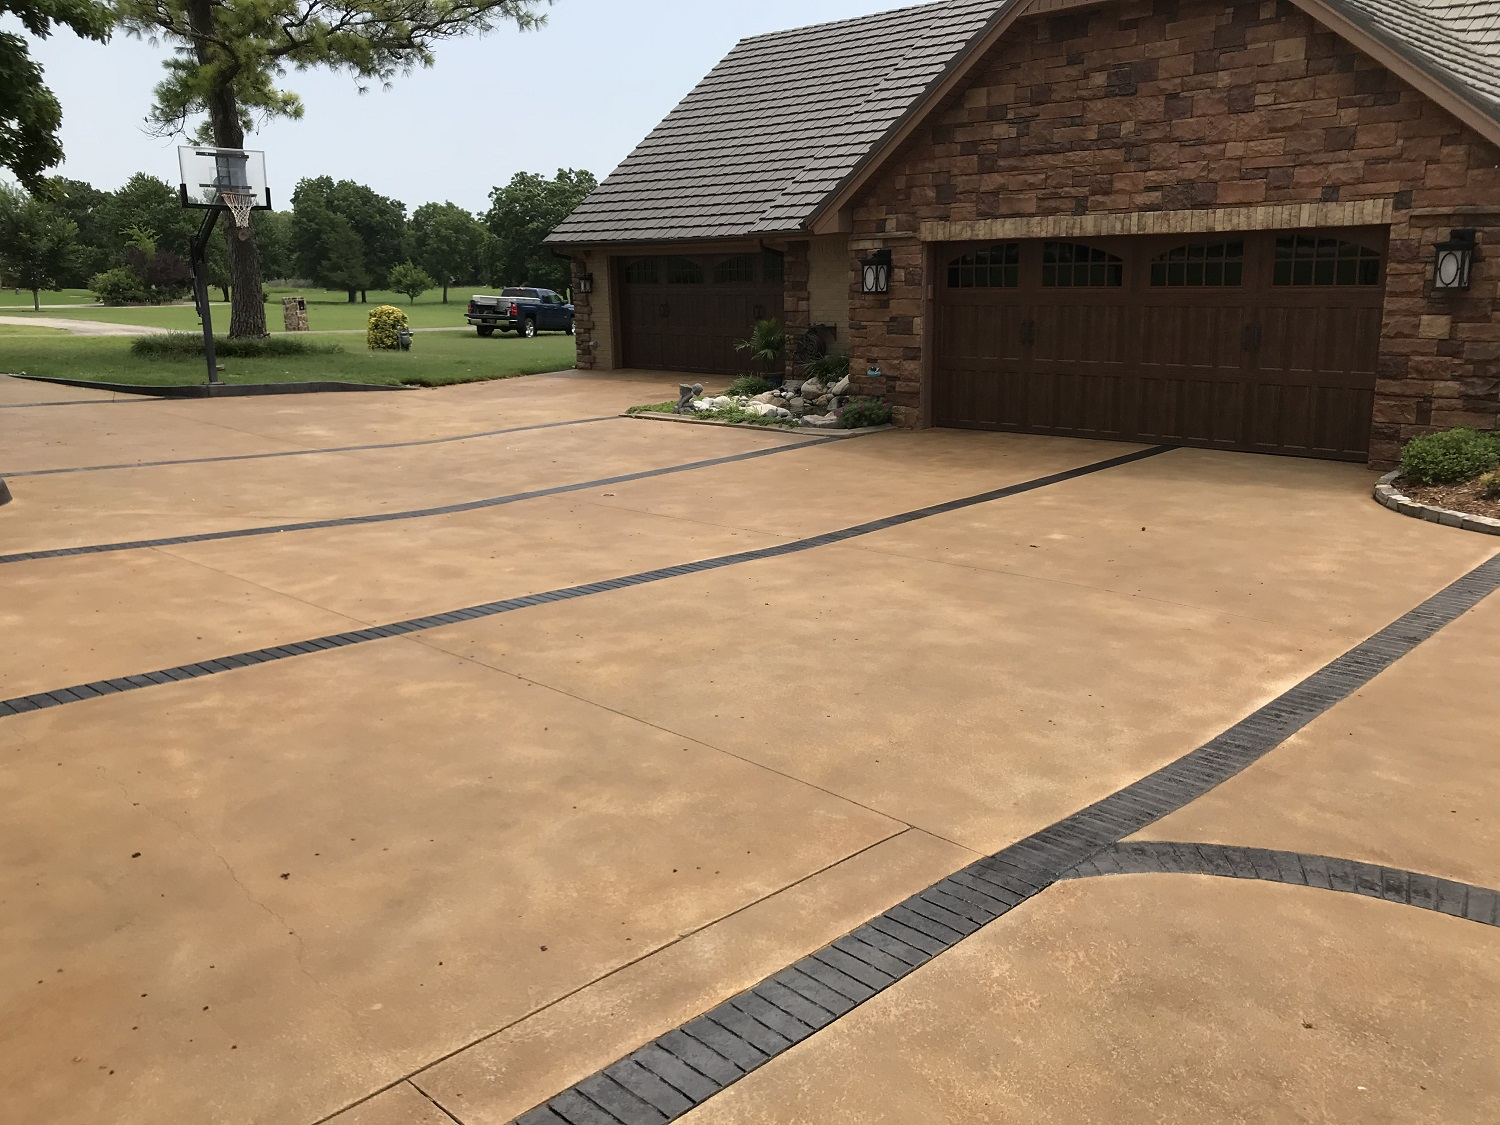 Design by project: Resurfacing and Staining Concrete Driveway